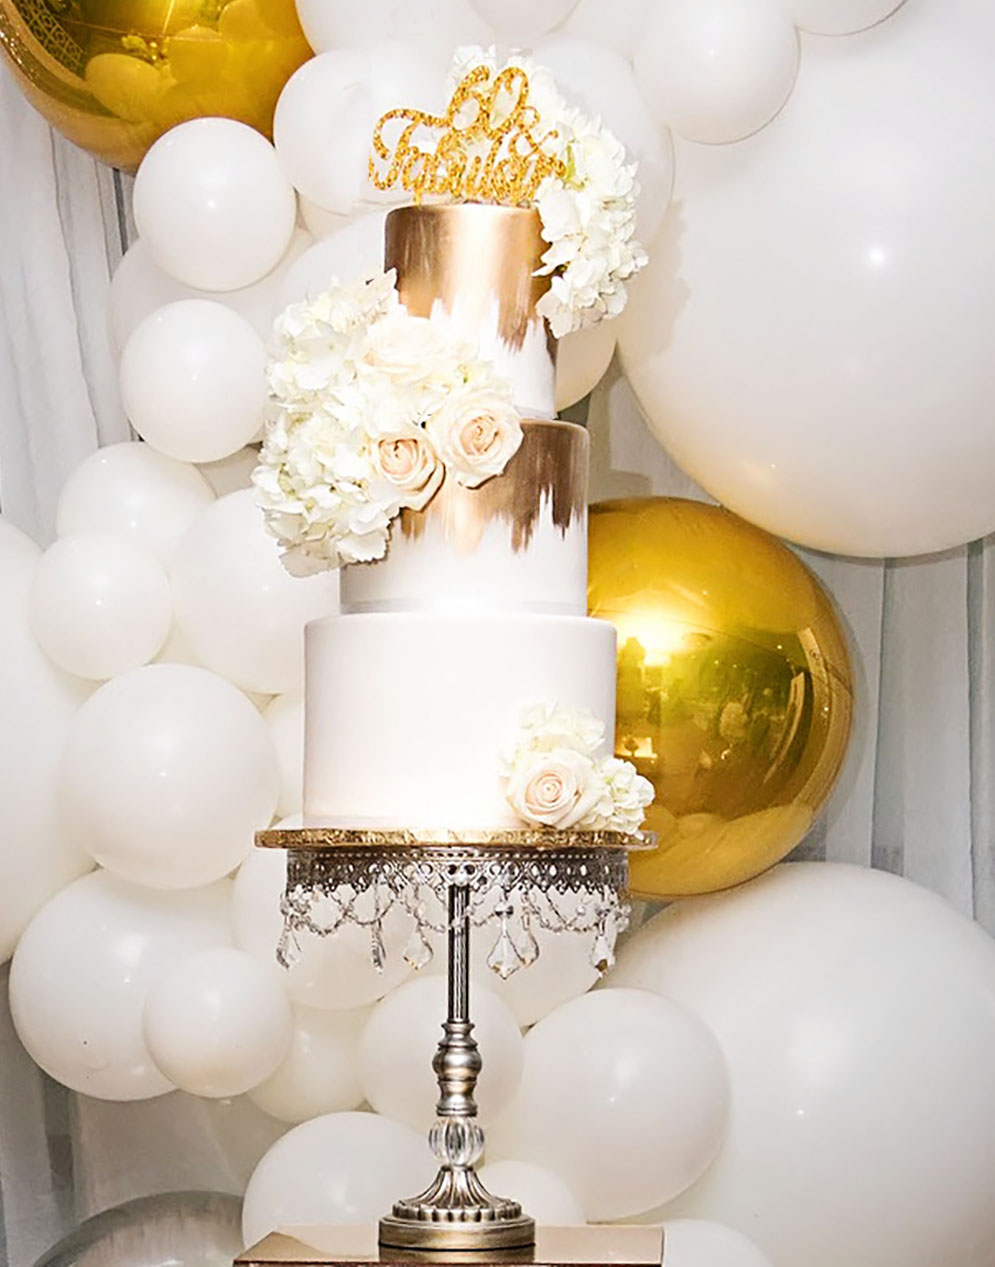 silver chandelier ball base cake stand.jpg